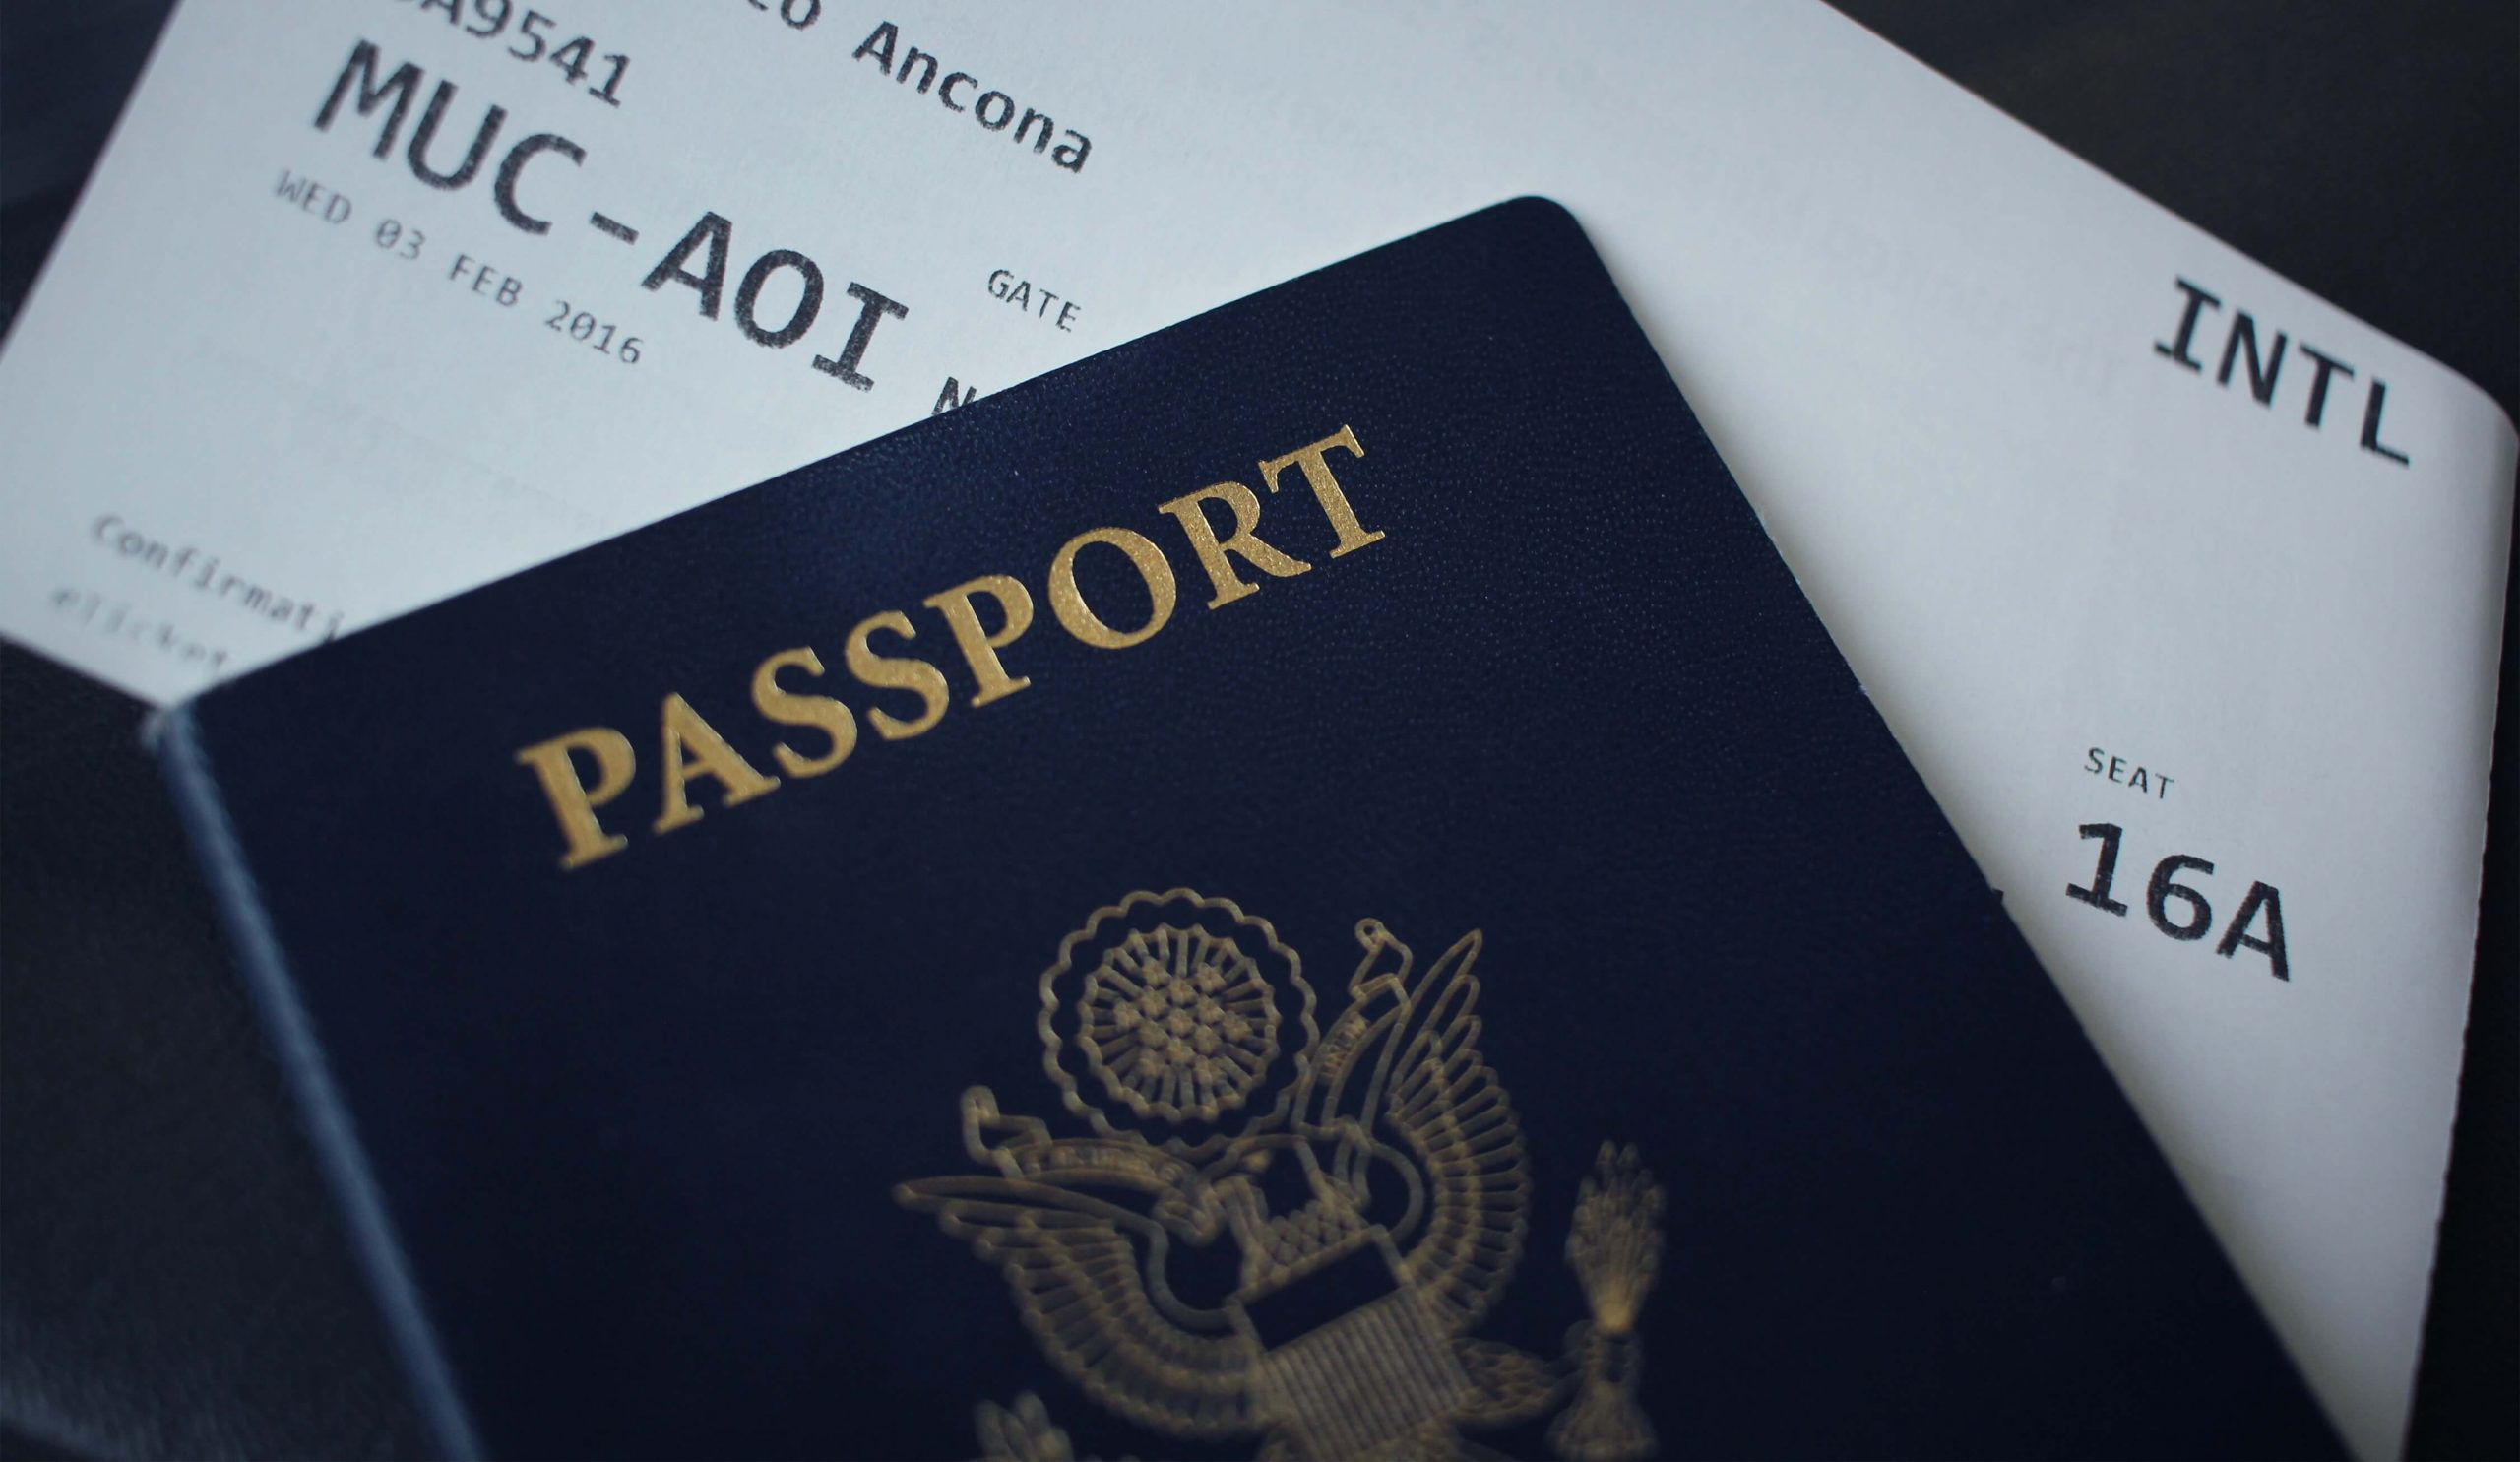 Cheap Vietnam Visa For Belize Citizens, Belize Passport Holders